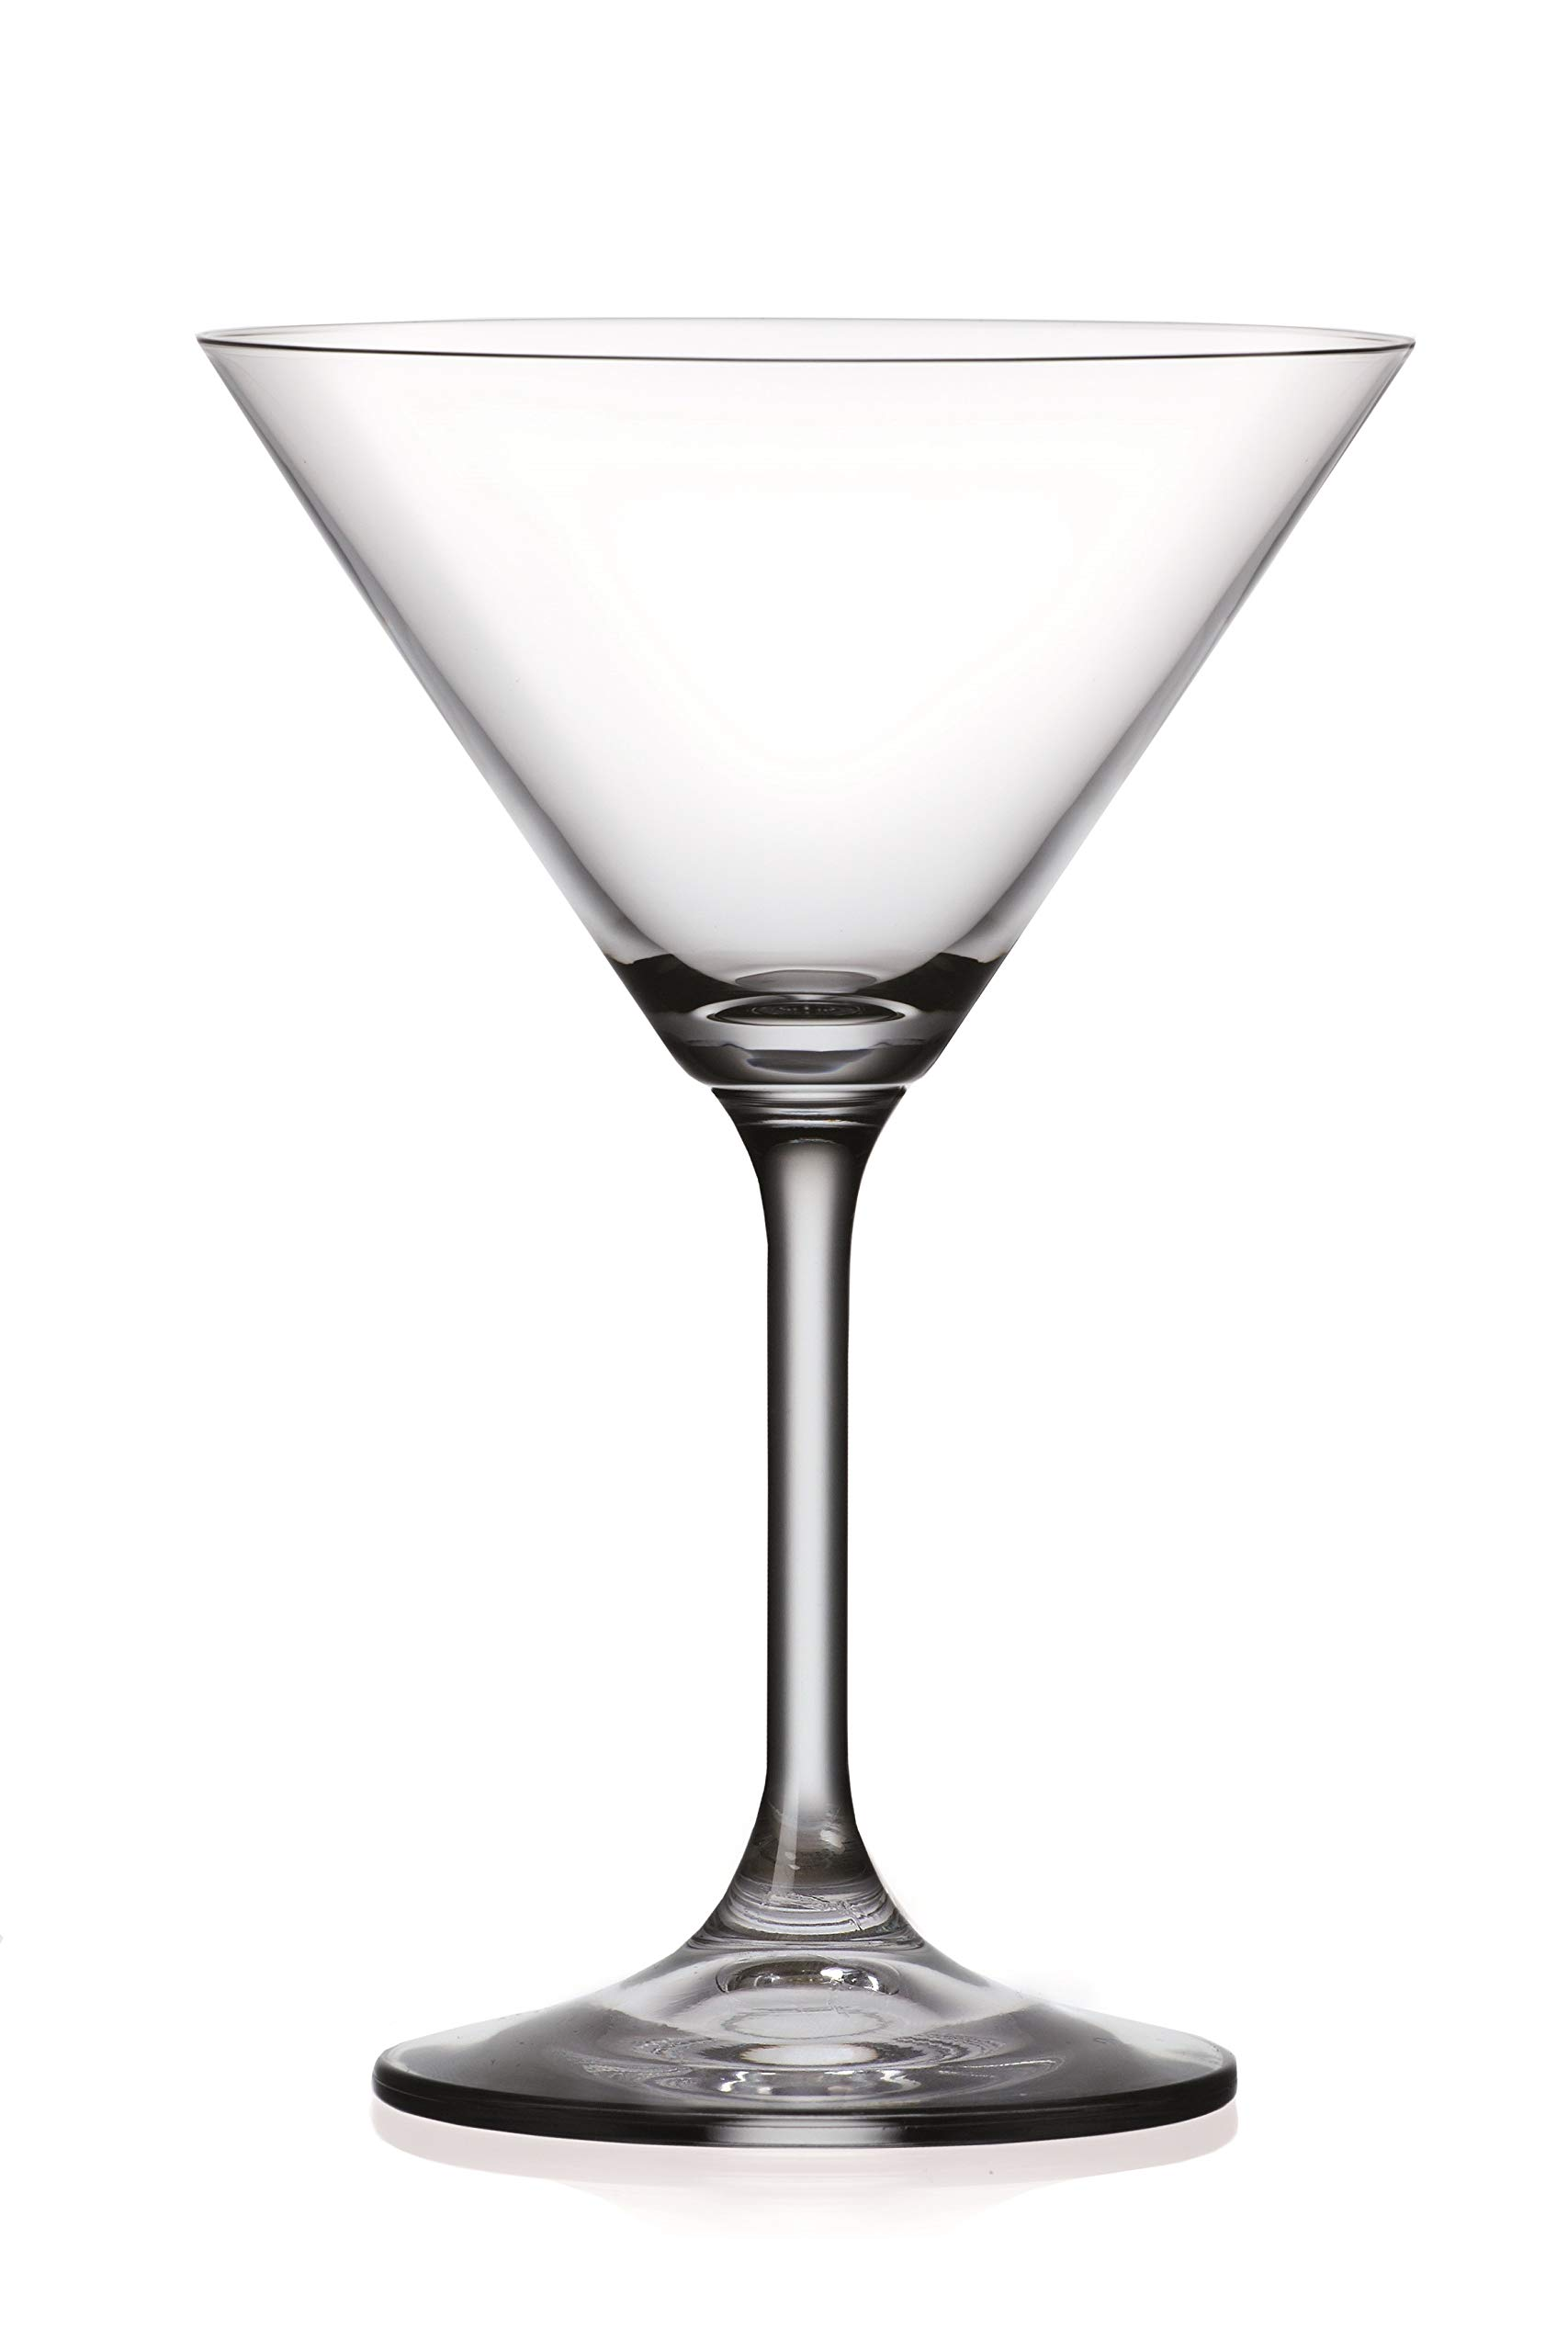 Martini - Glasses - Classic Clear Glass - Lead Free - Set of 6 - by Barski - Made in Europe - 8 oz.